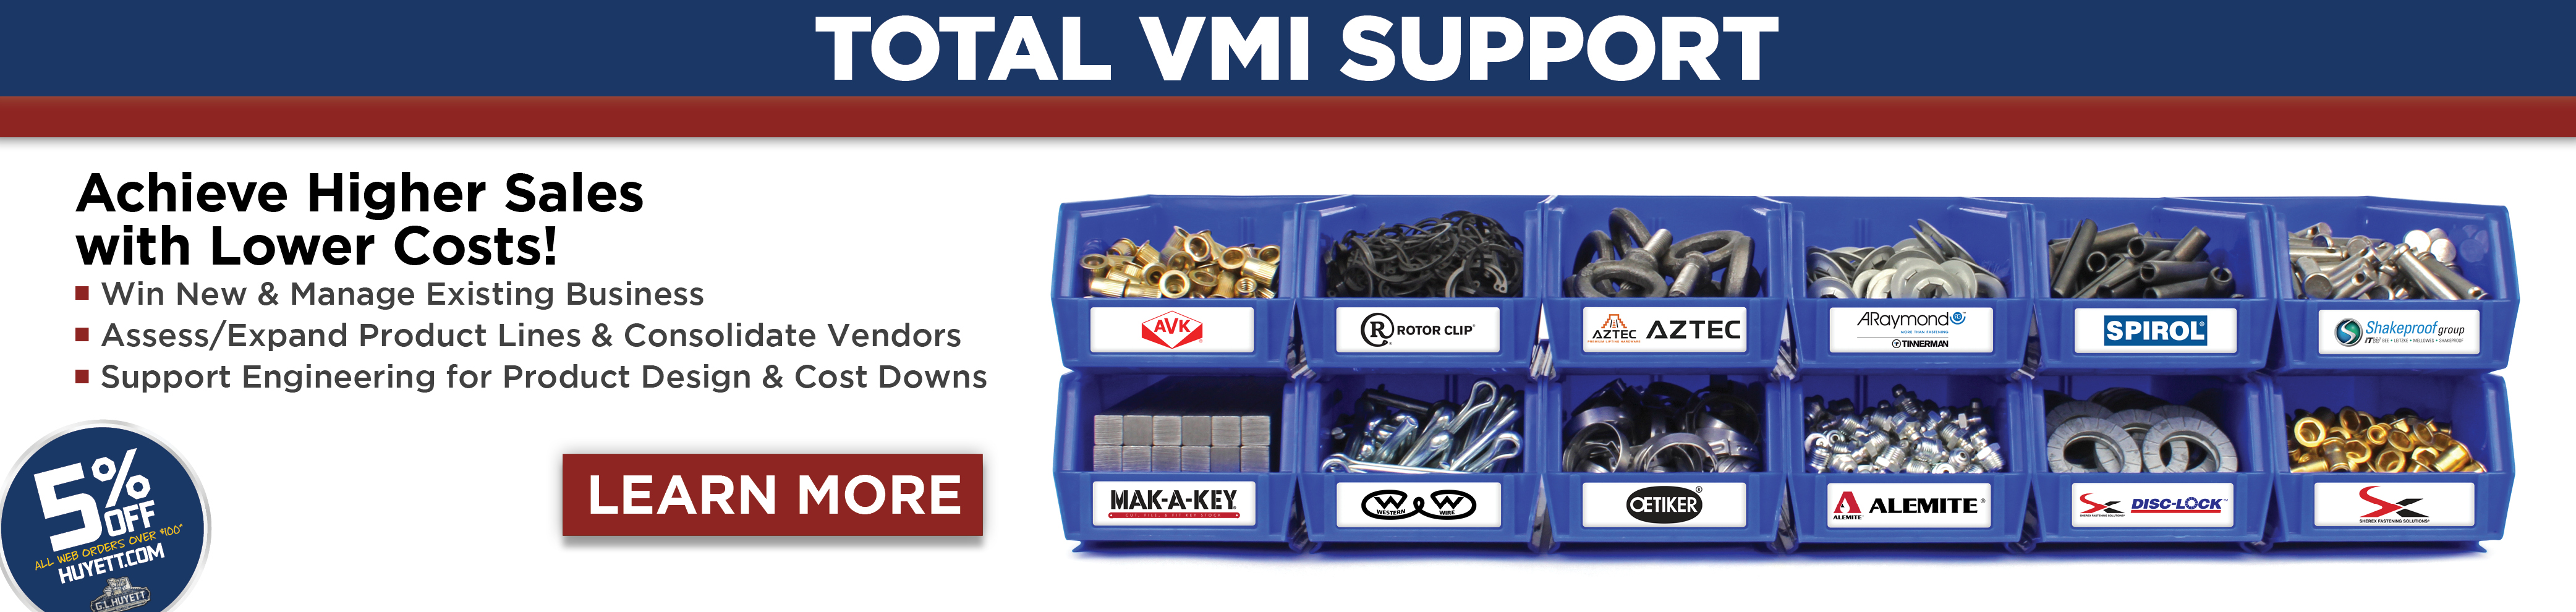 Total VMI Support